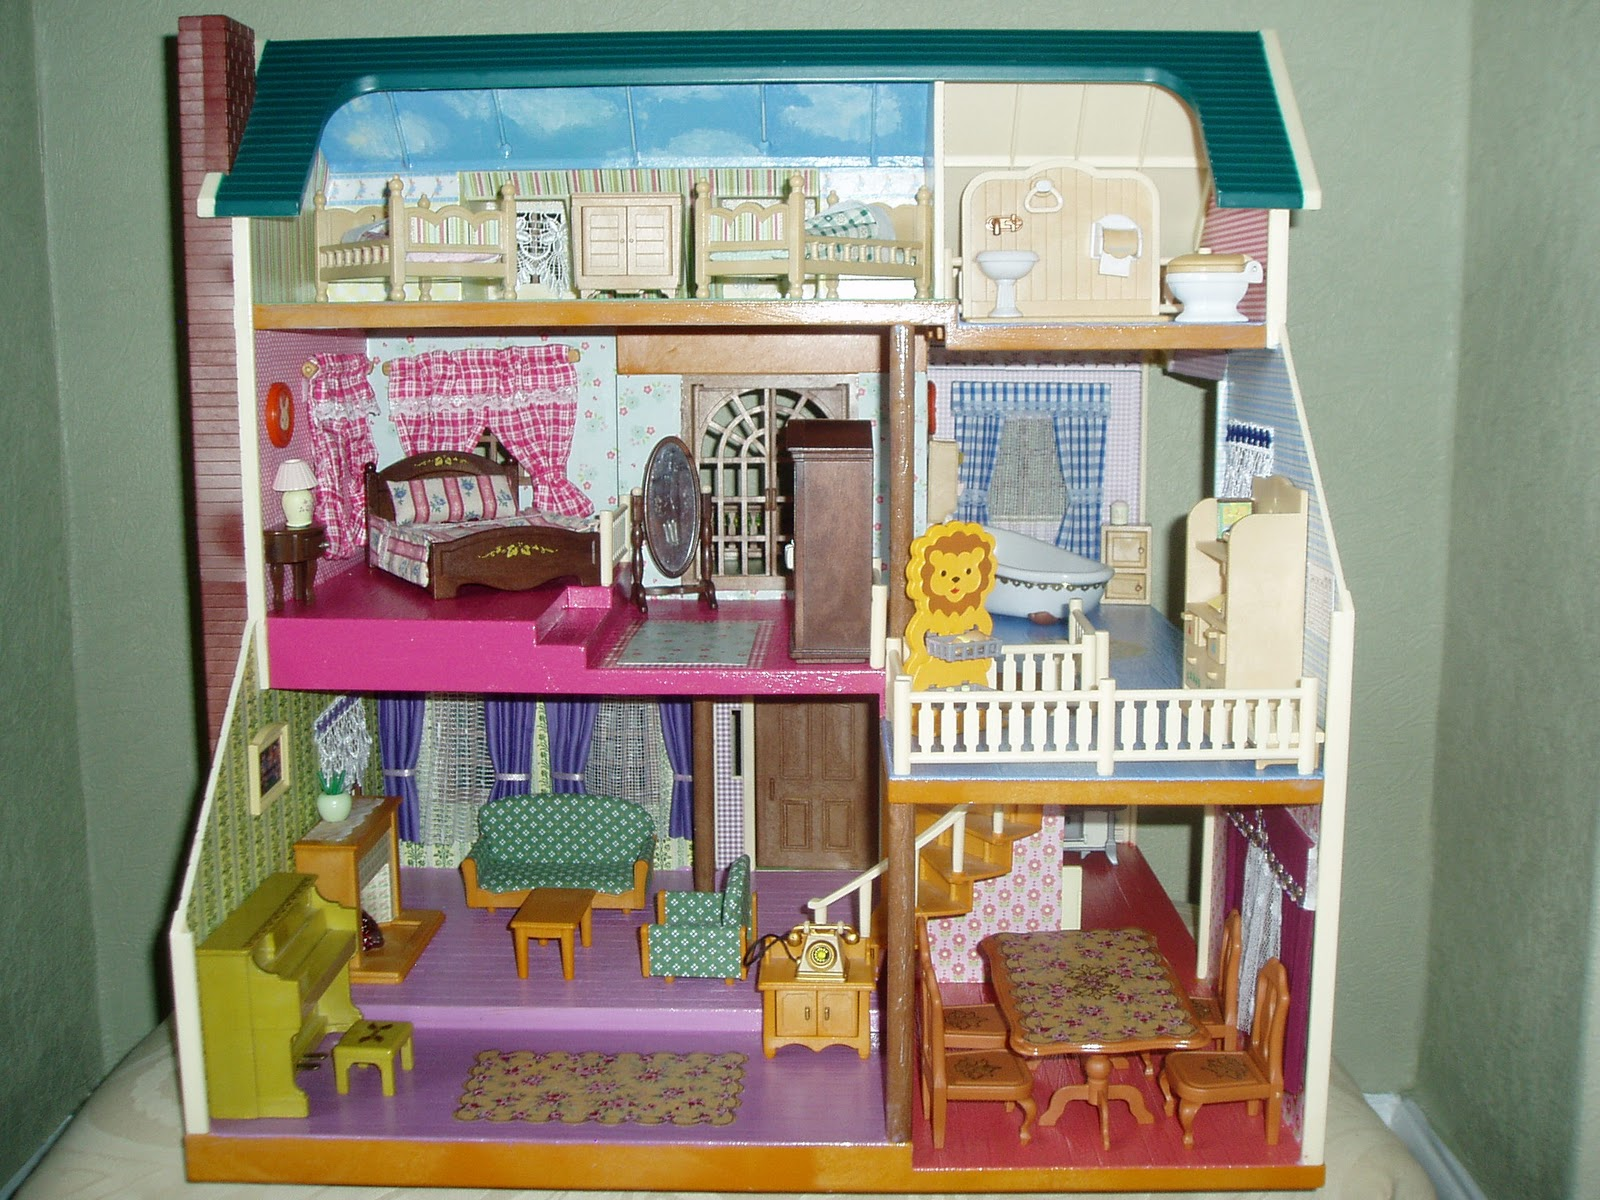 Sylvanian Couture Designer Homes: The House on the Hill